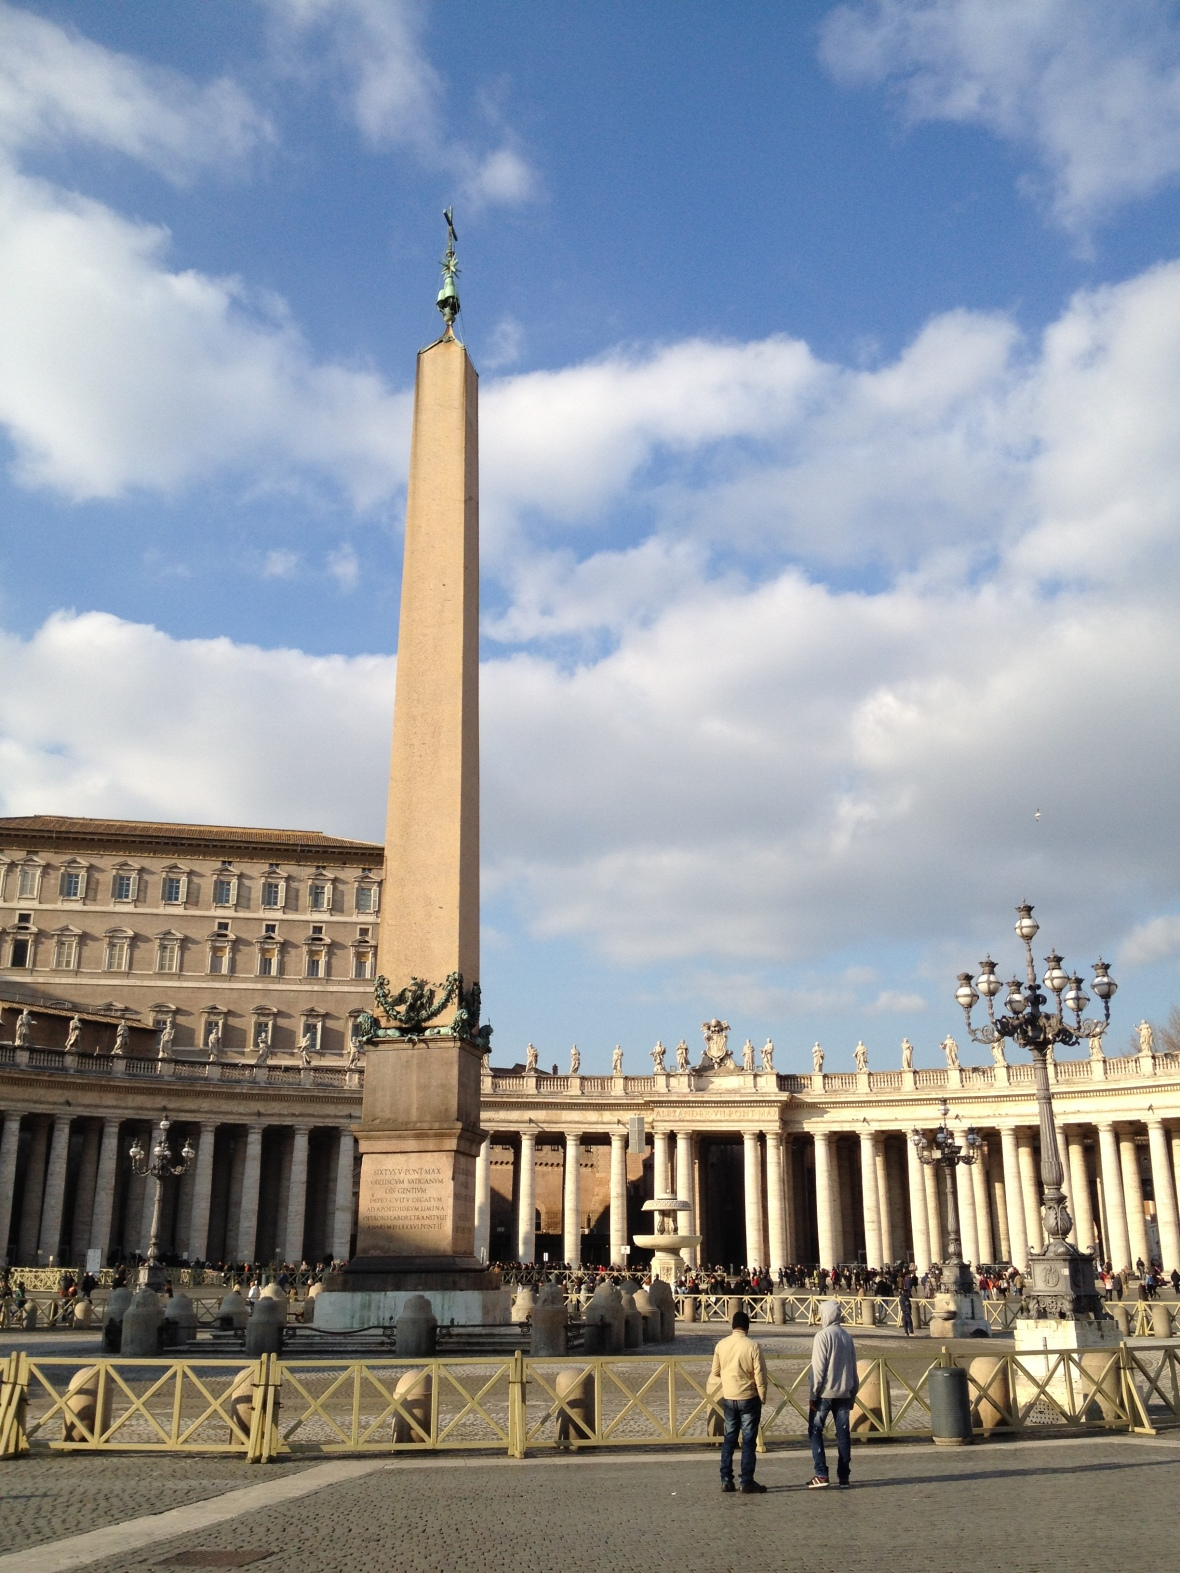 Vatican Obelisk 41m, inc 25.5m Egyptian red granite, last re-erected in 1586 as Bernini's plaza centrepiece